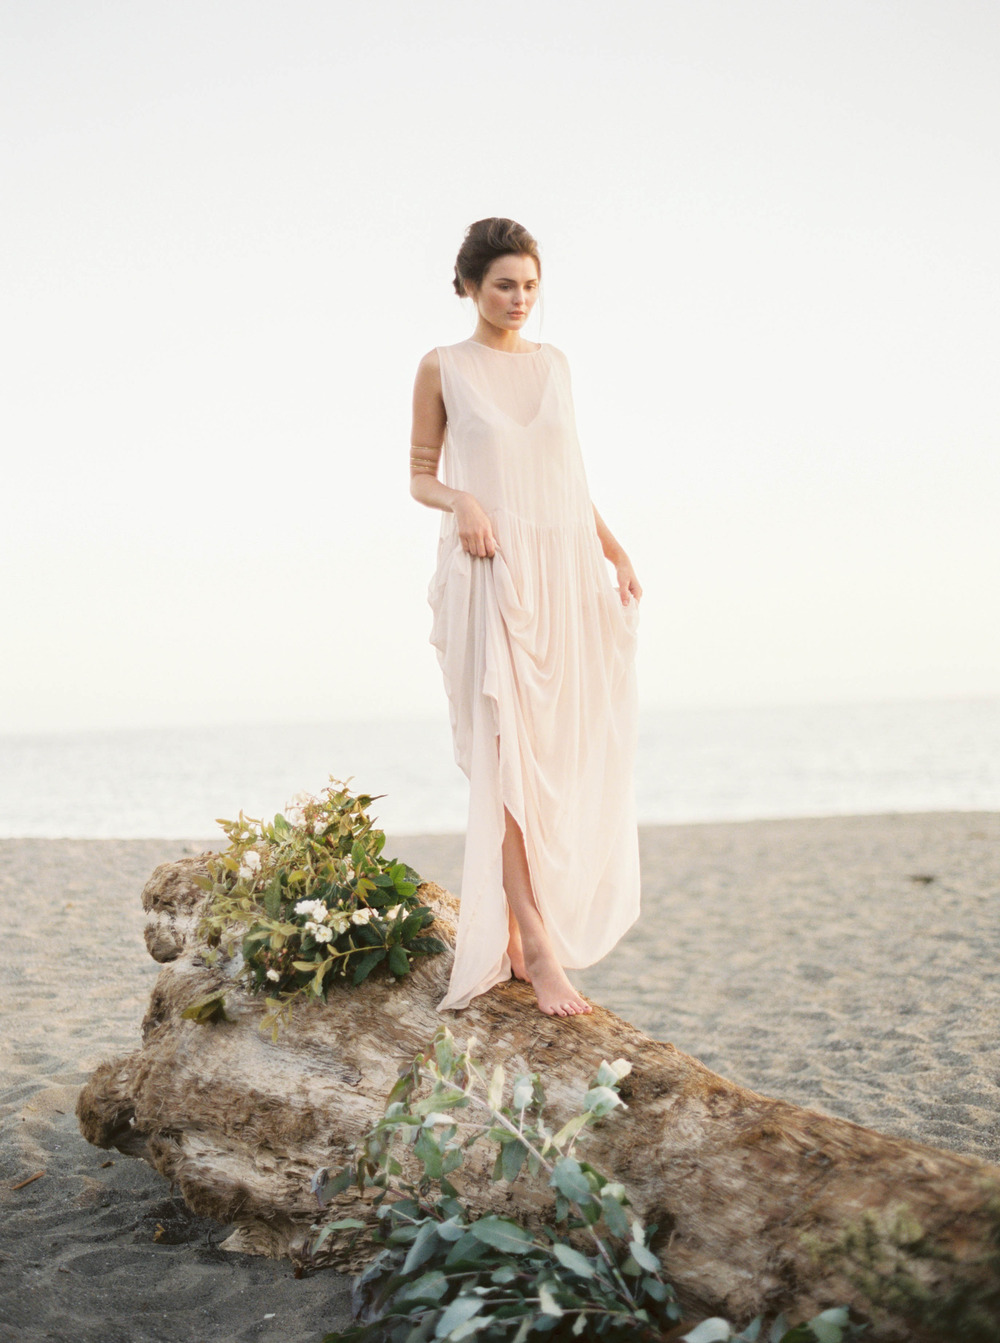 Meghan Mehan Fine Art Photography - Elk, California - Beach Bridal_Chloe - 021.jpg